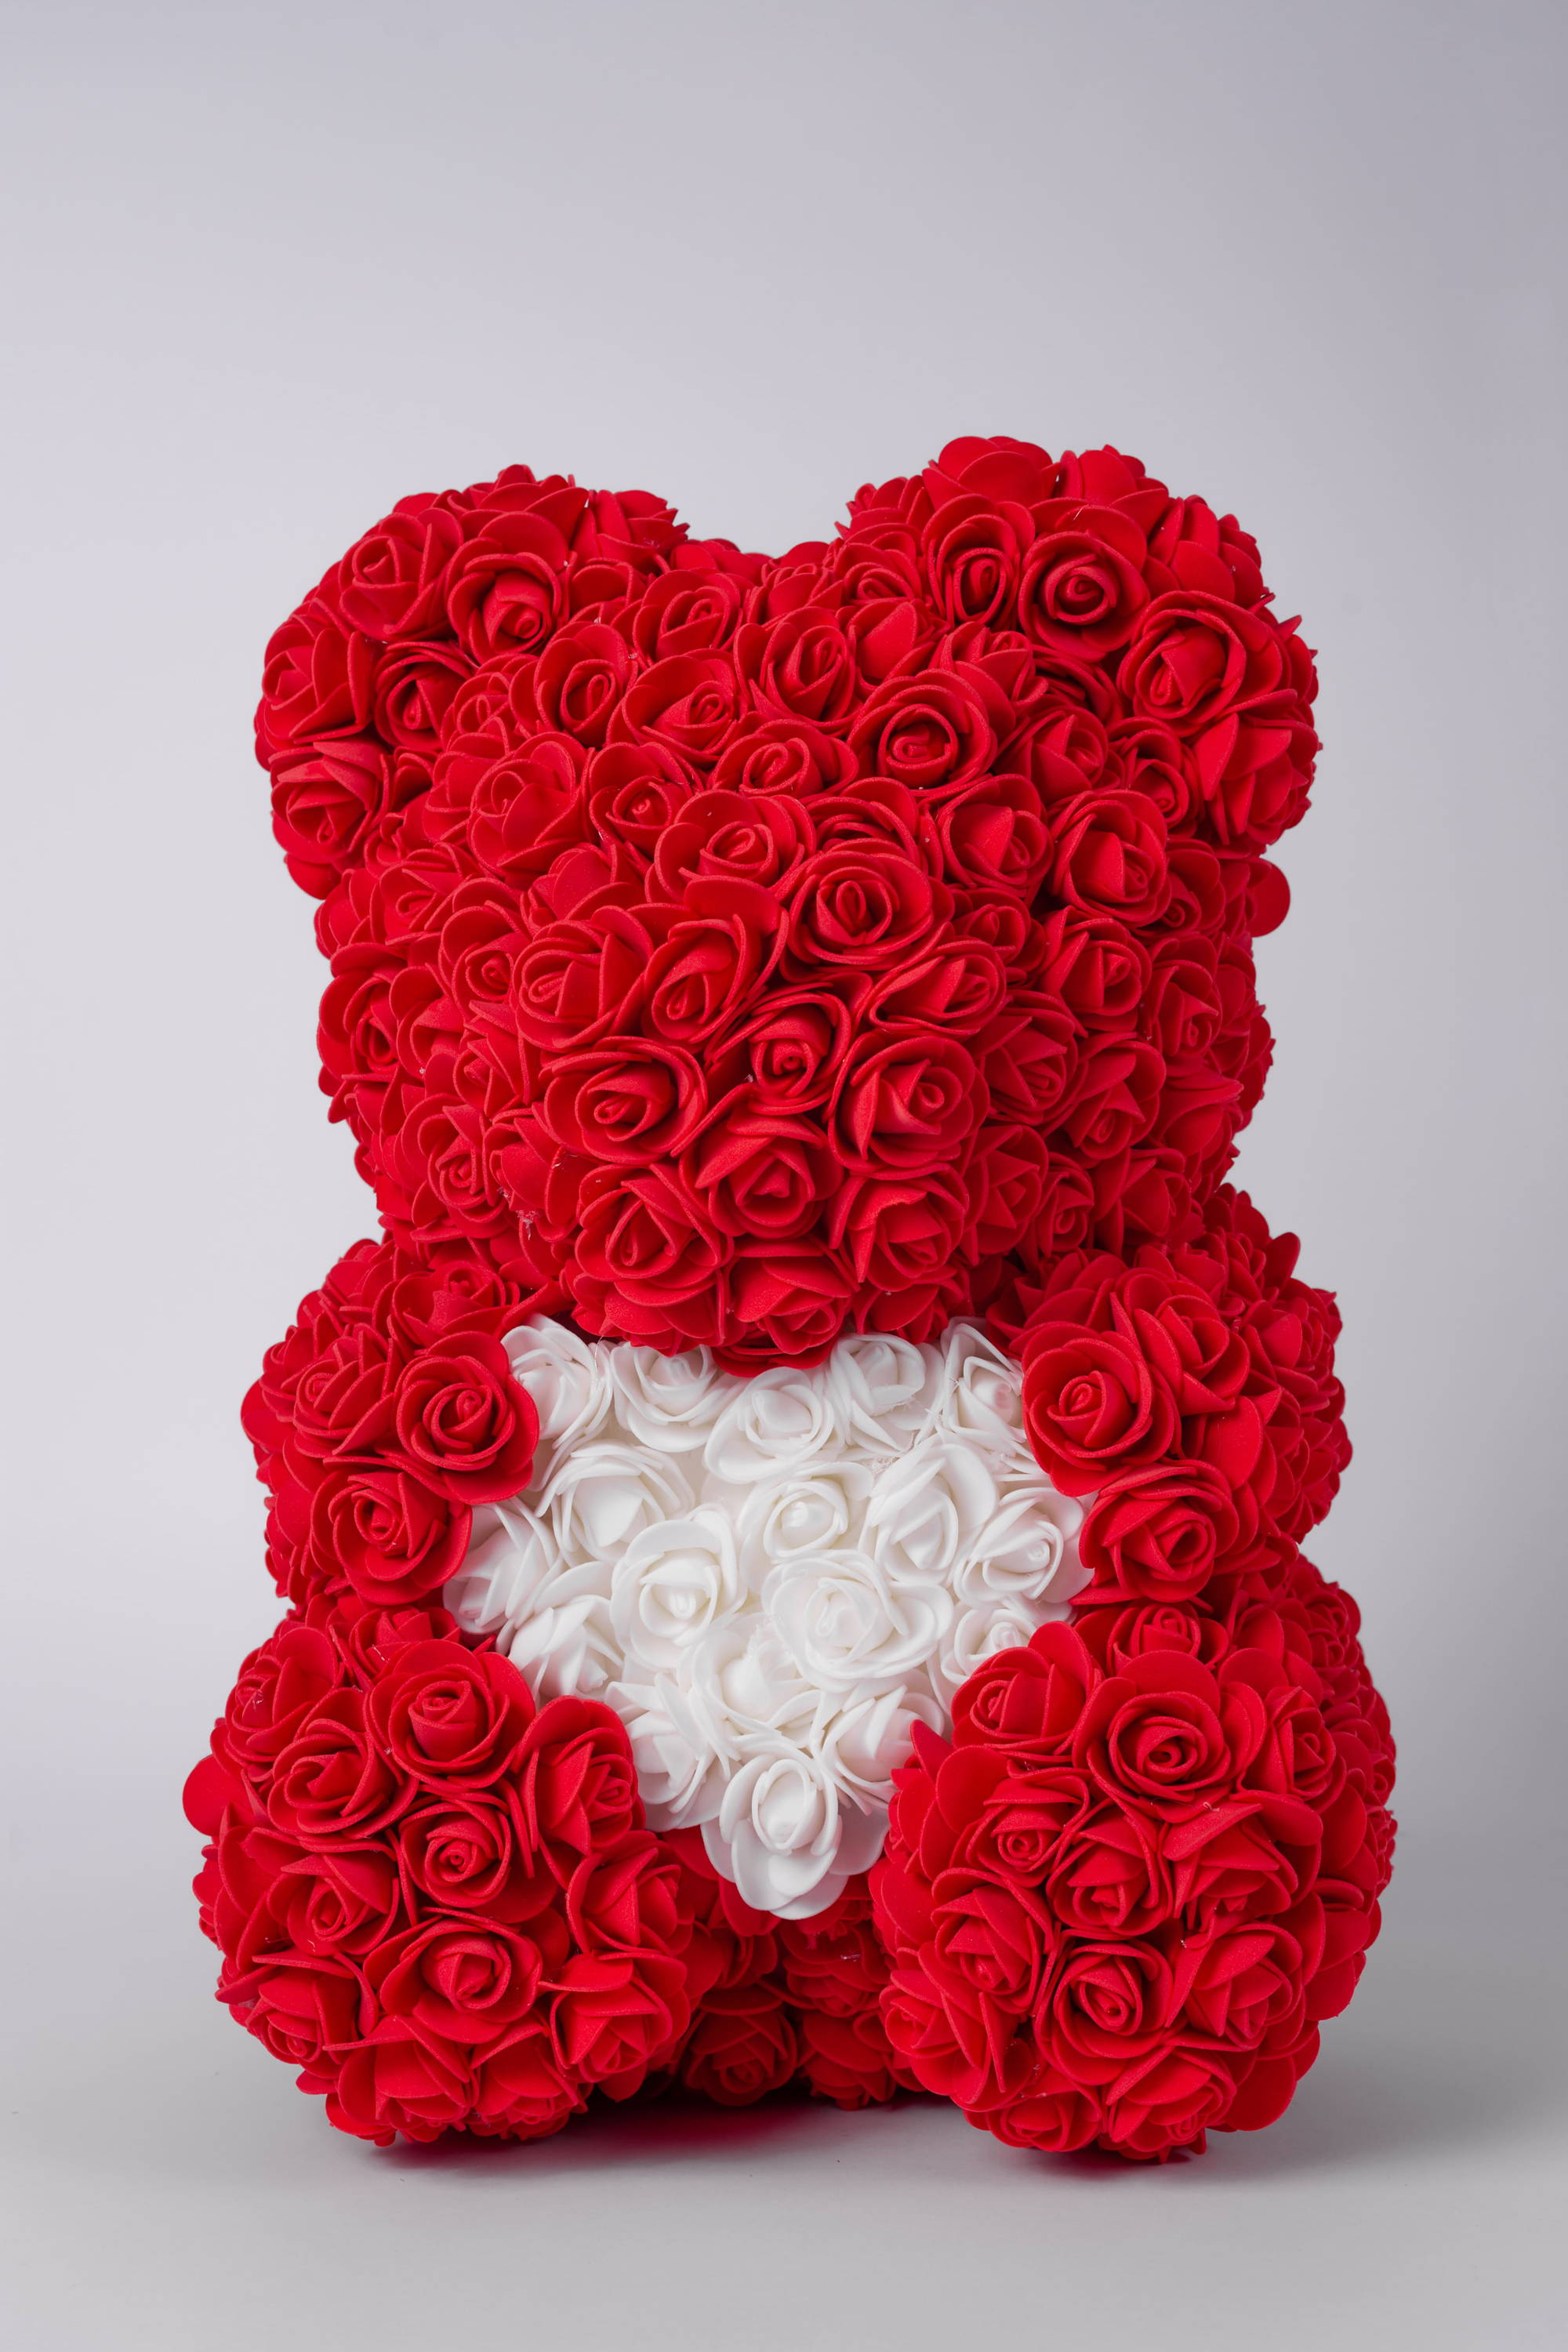 gifts for valentines day for her, rose bear valentines day, red rose bear